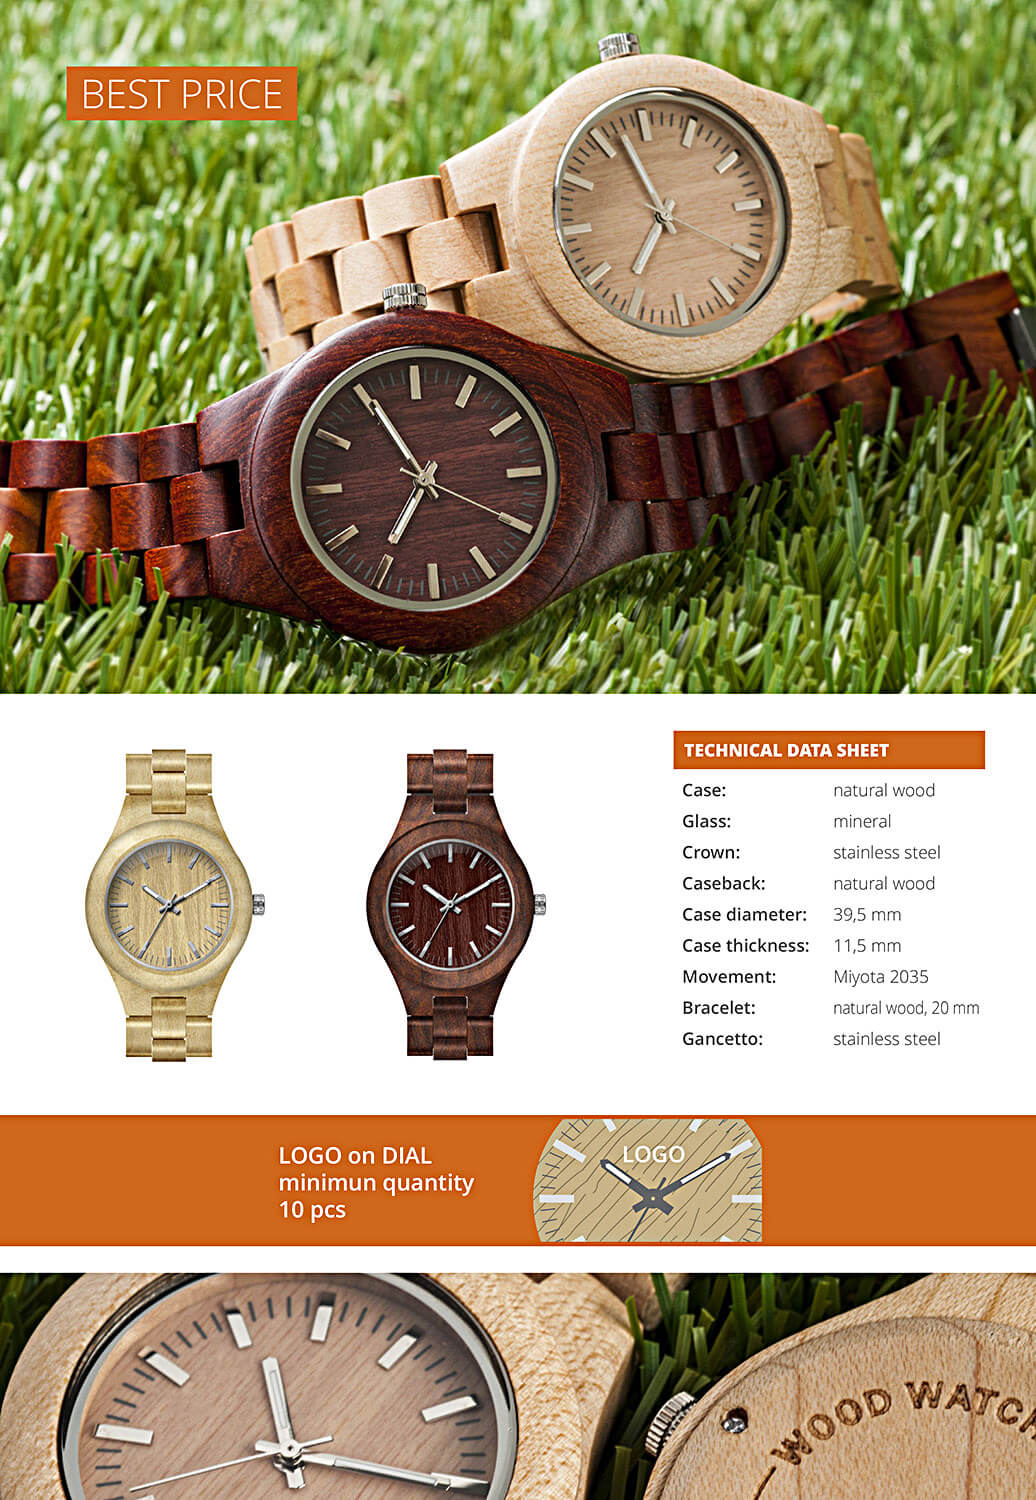 9801WE3WDBSL and 9801WE3WIVSL watch Greenwood. Case: stainless steel with polished and brushed finishing - Water resistant: 5 ATM. Glass: mineral.